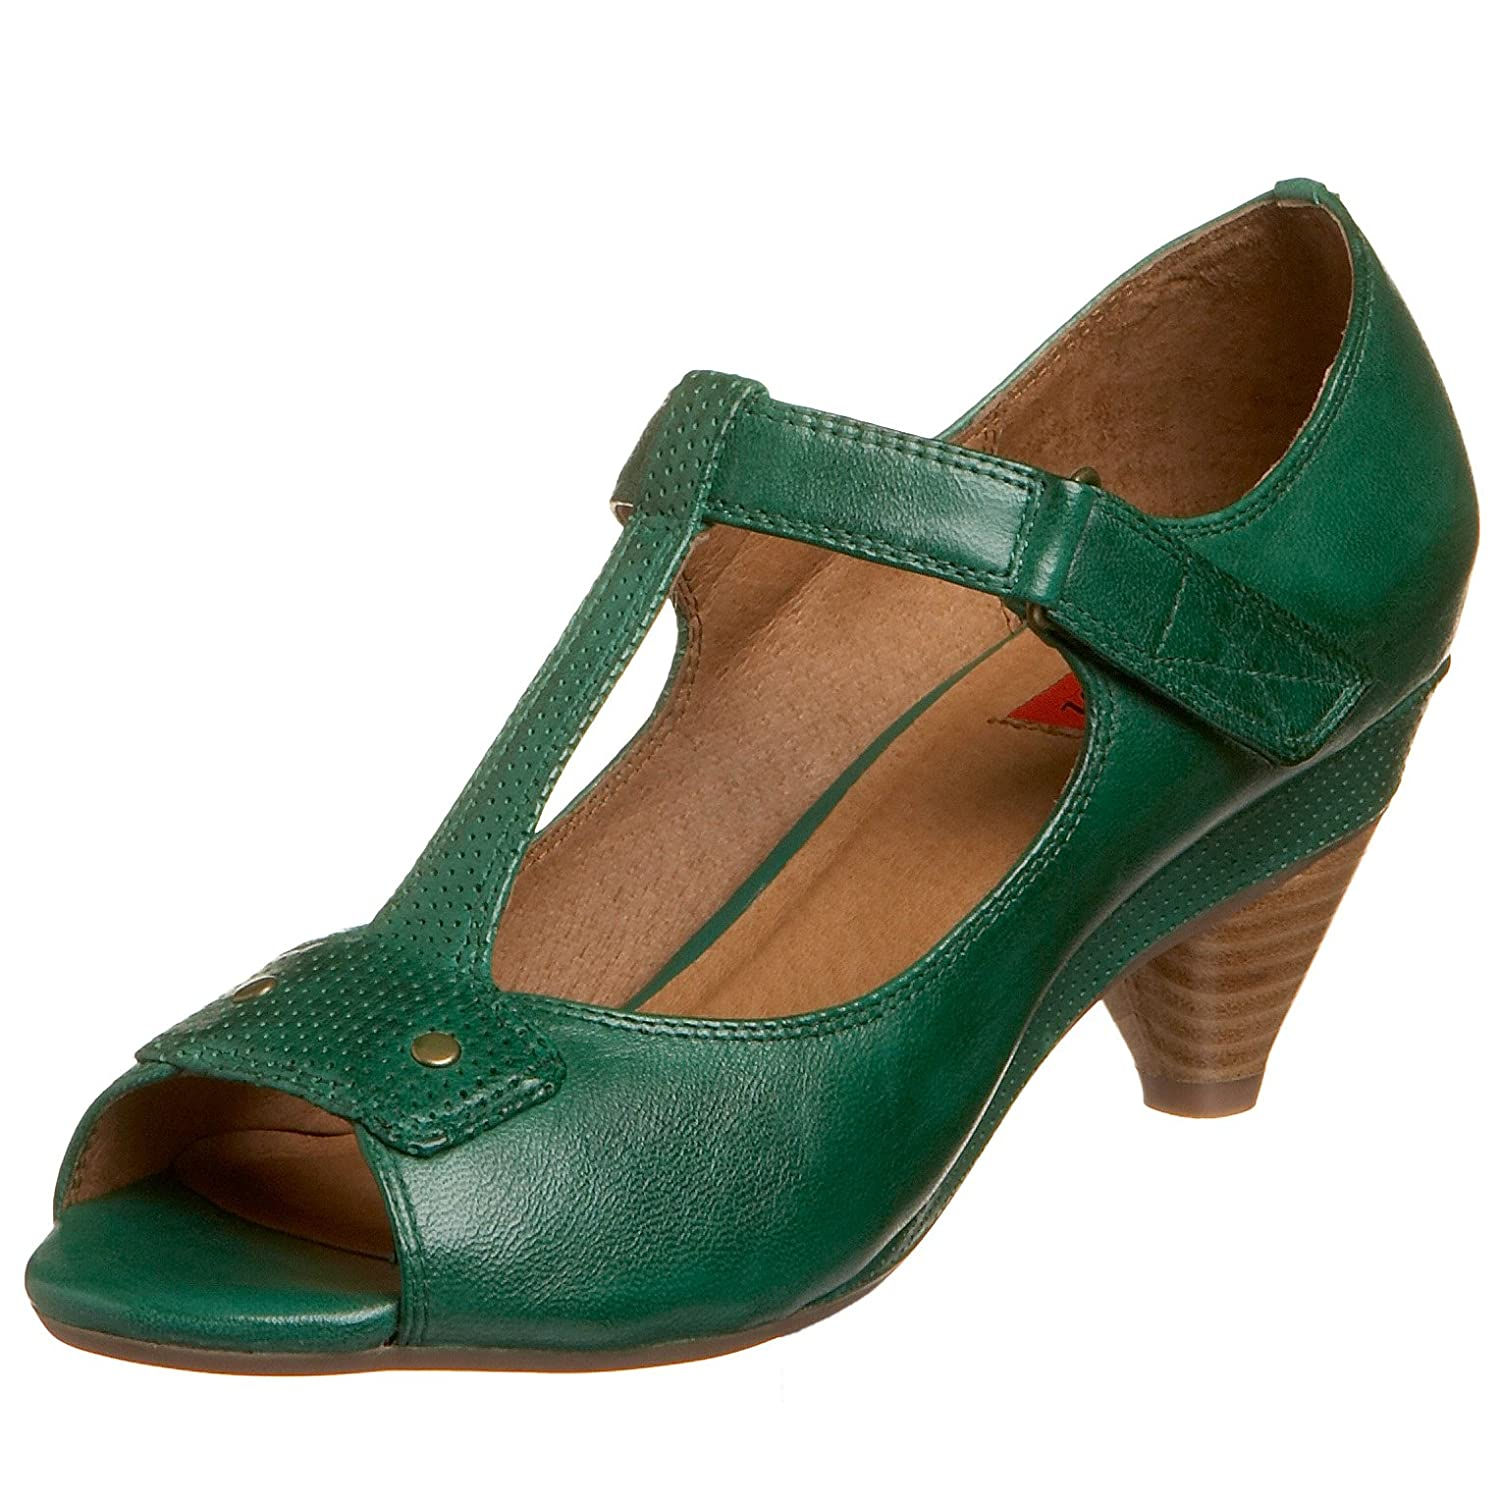 Miz Mooz Rimini T-Strap Pump - Free Overnight Shipping & Return Shipping: Endless.com from endless.com